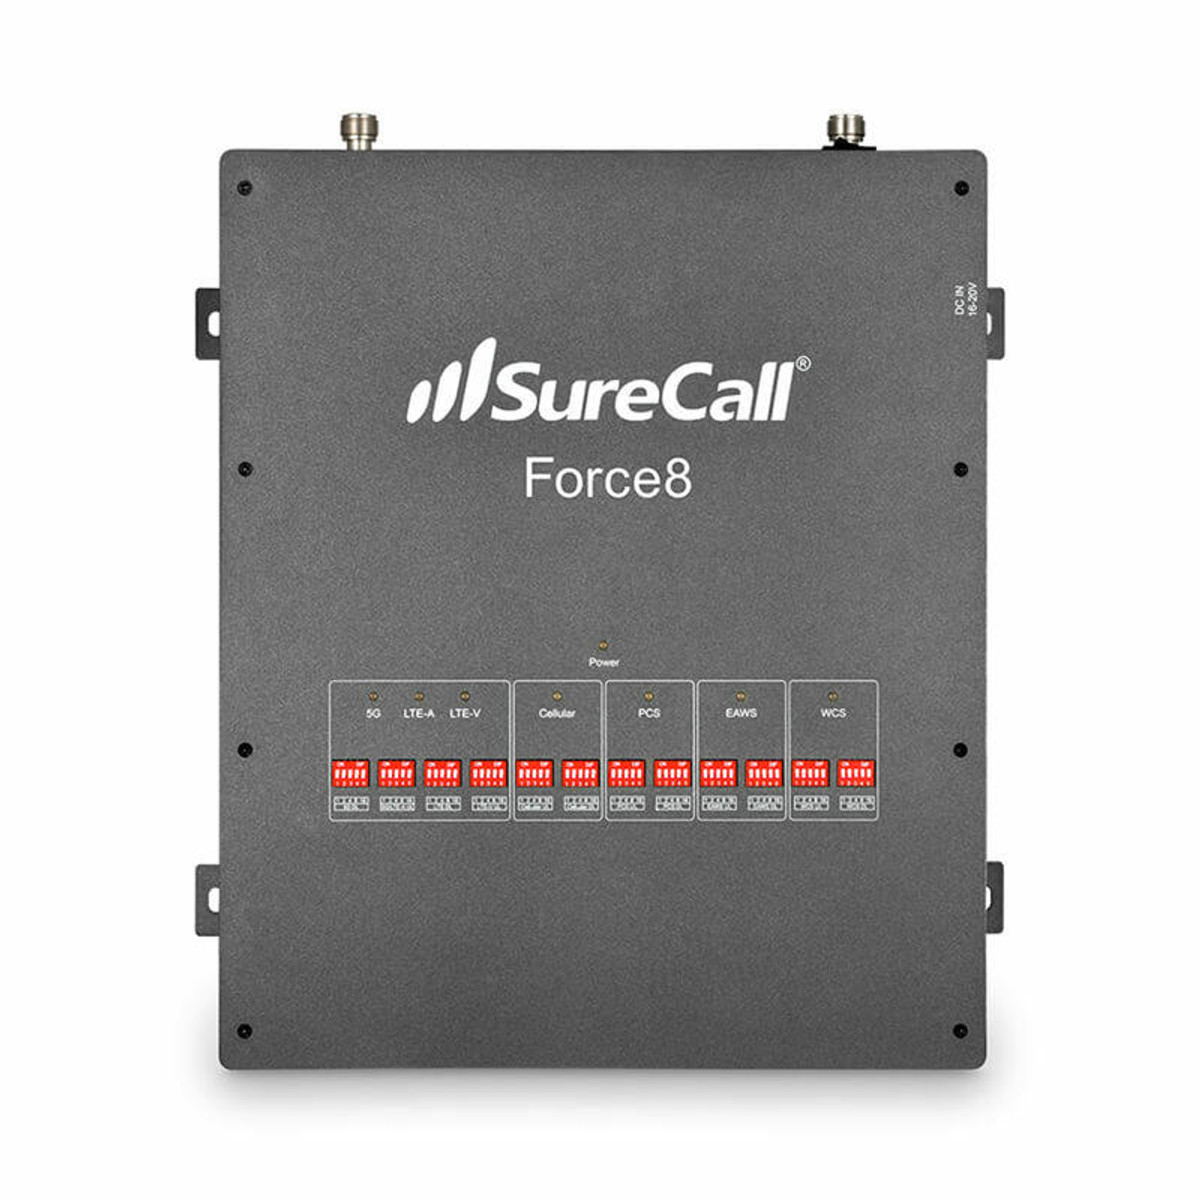 SureCall SureCall Force8 Industrial 3G, 4G LTE and 5G Signal Booster